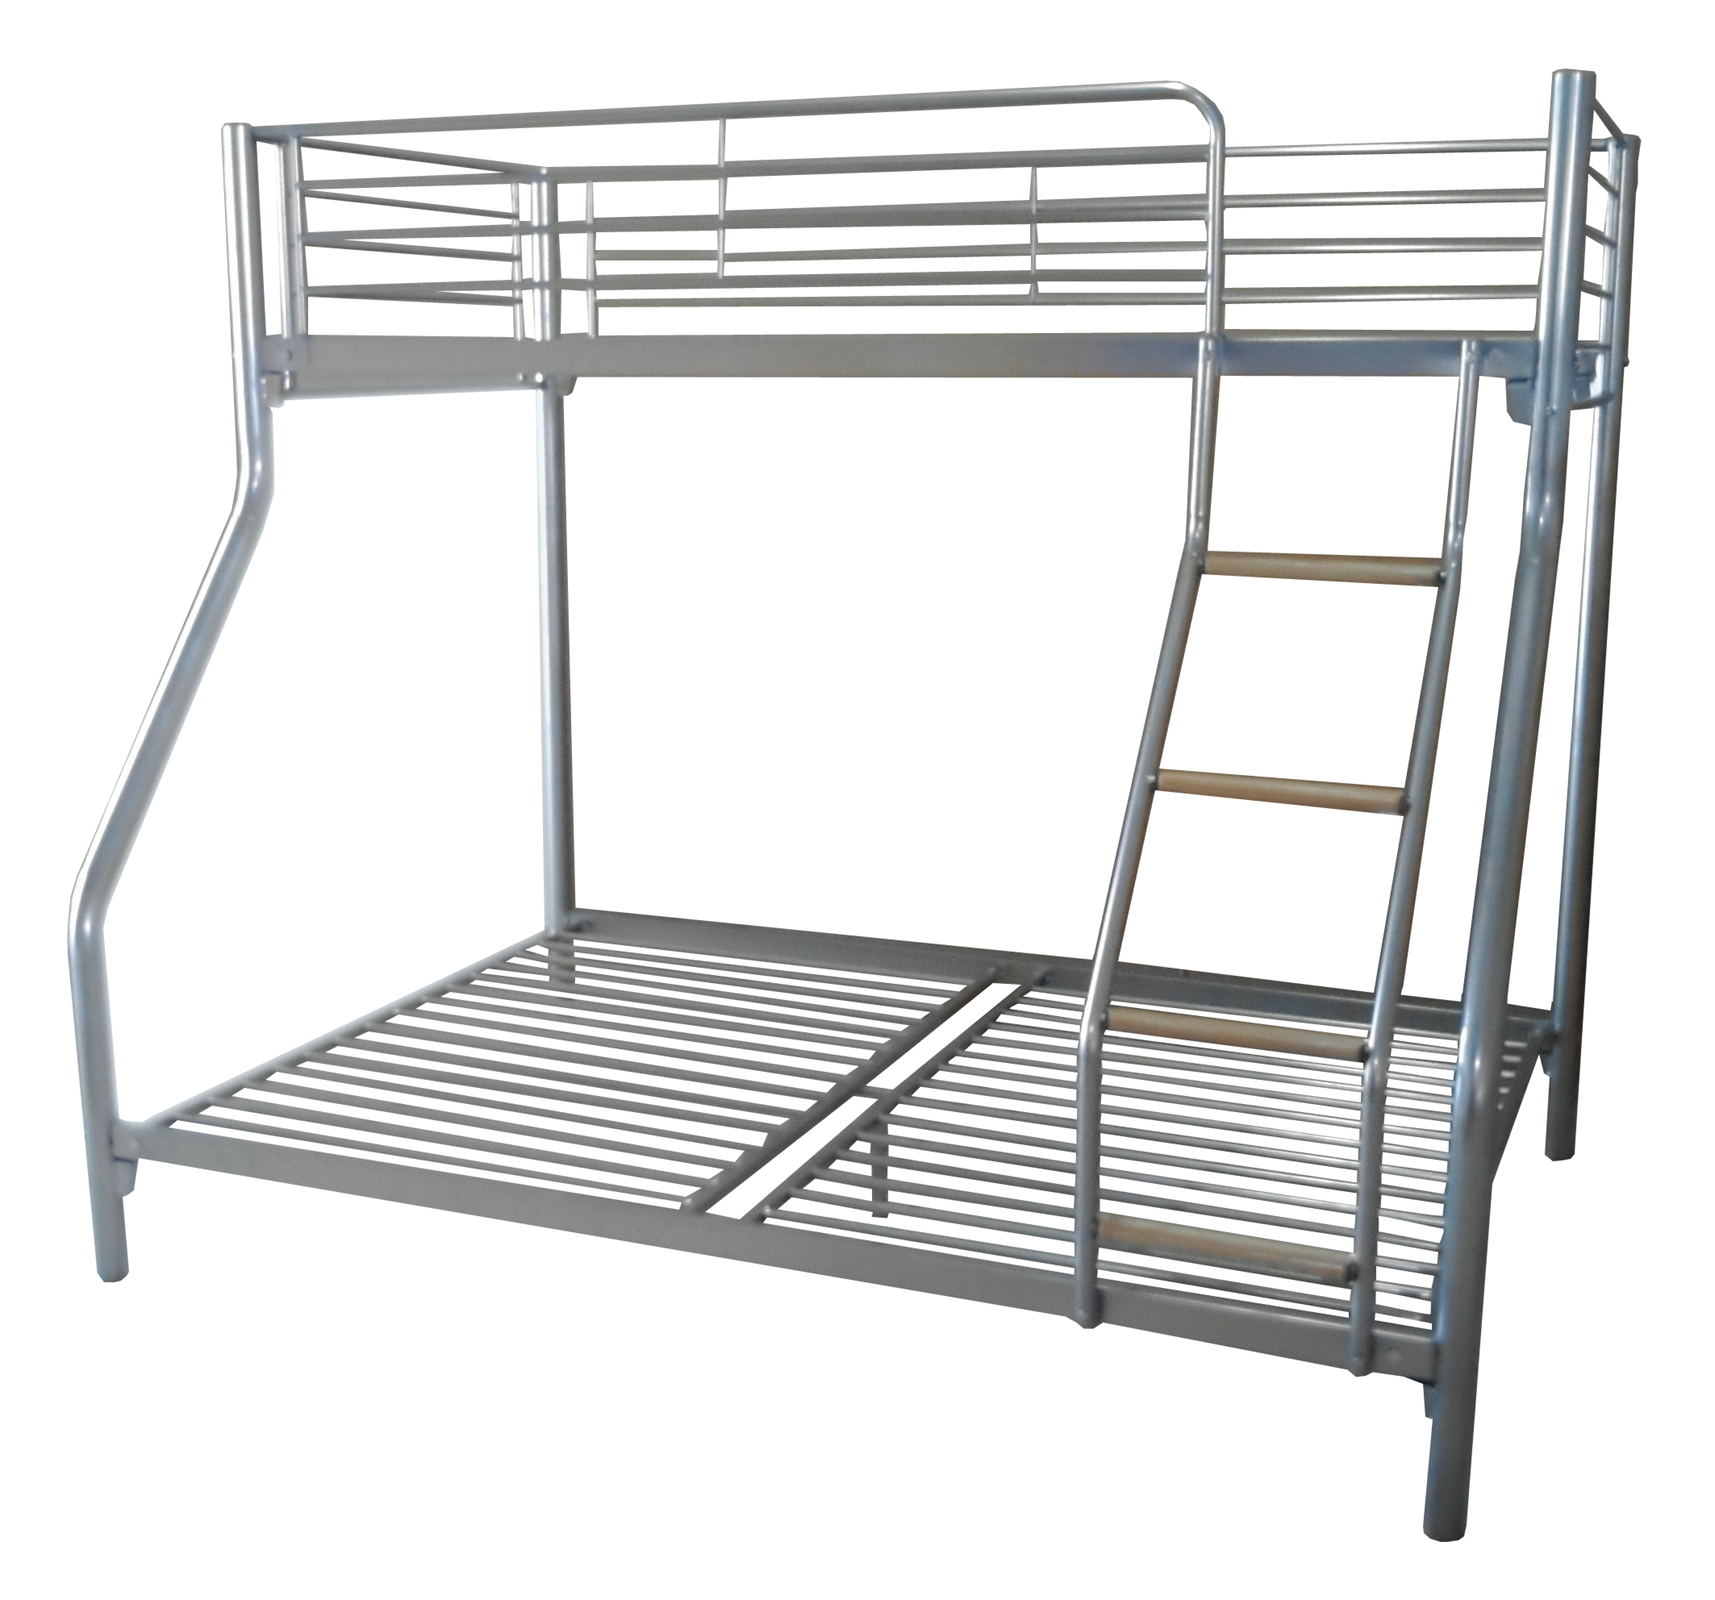 foxhunter silver kid triple sleeper bunk bed metal frame no mattress wood ladder ebay. Black Bedroom Furniture Sets. Home Design Ideas